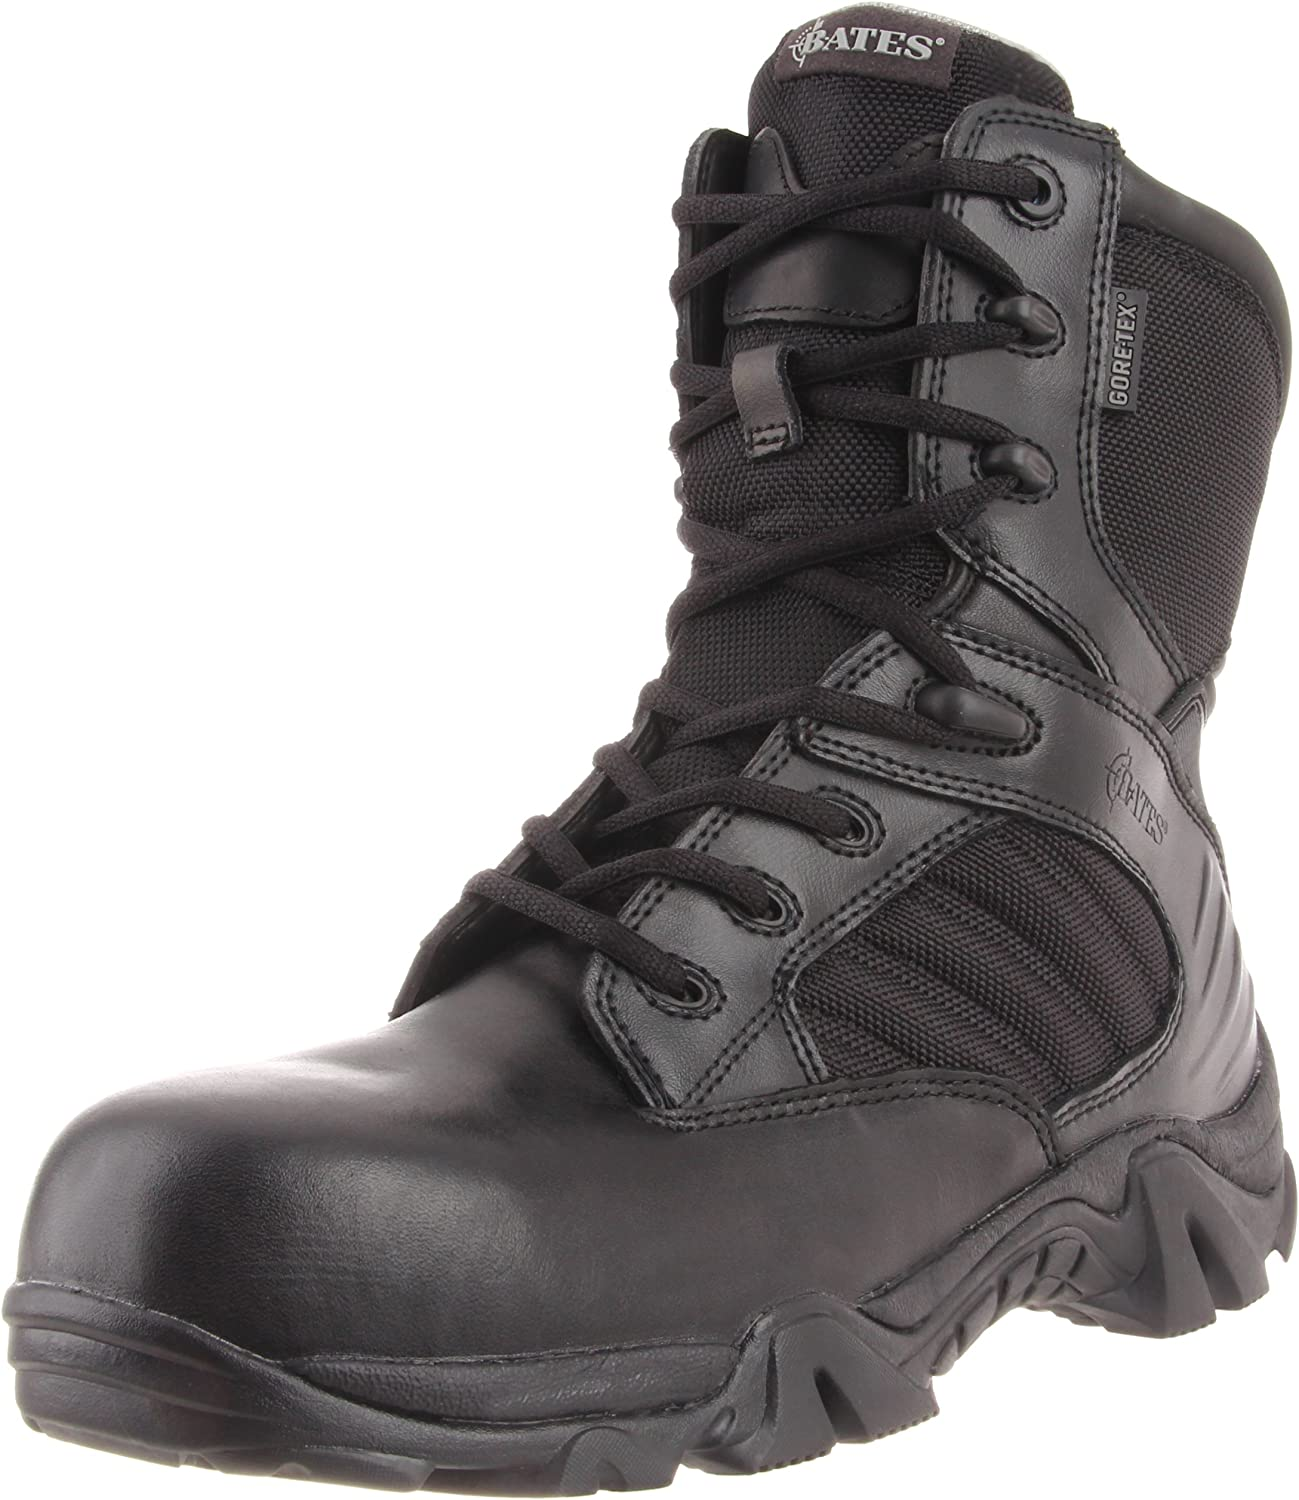 Bates Men's 8 Inch GTX Ultra Lites Comp Uniform Work Boot